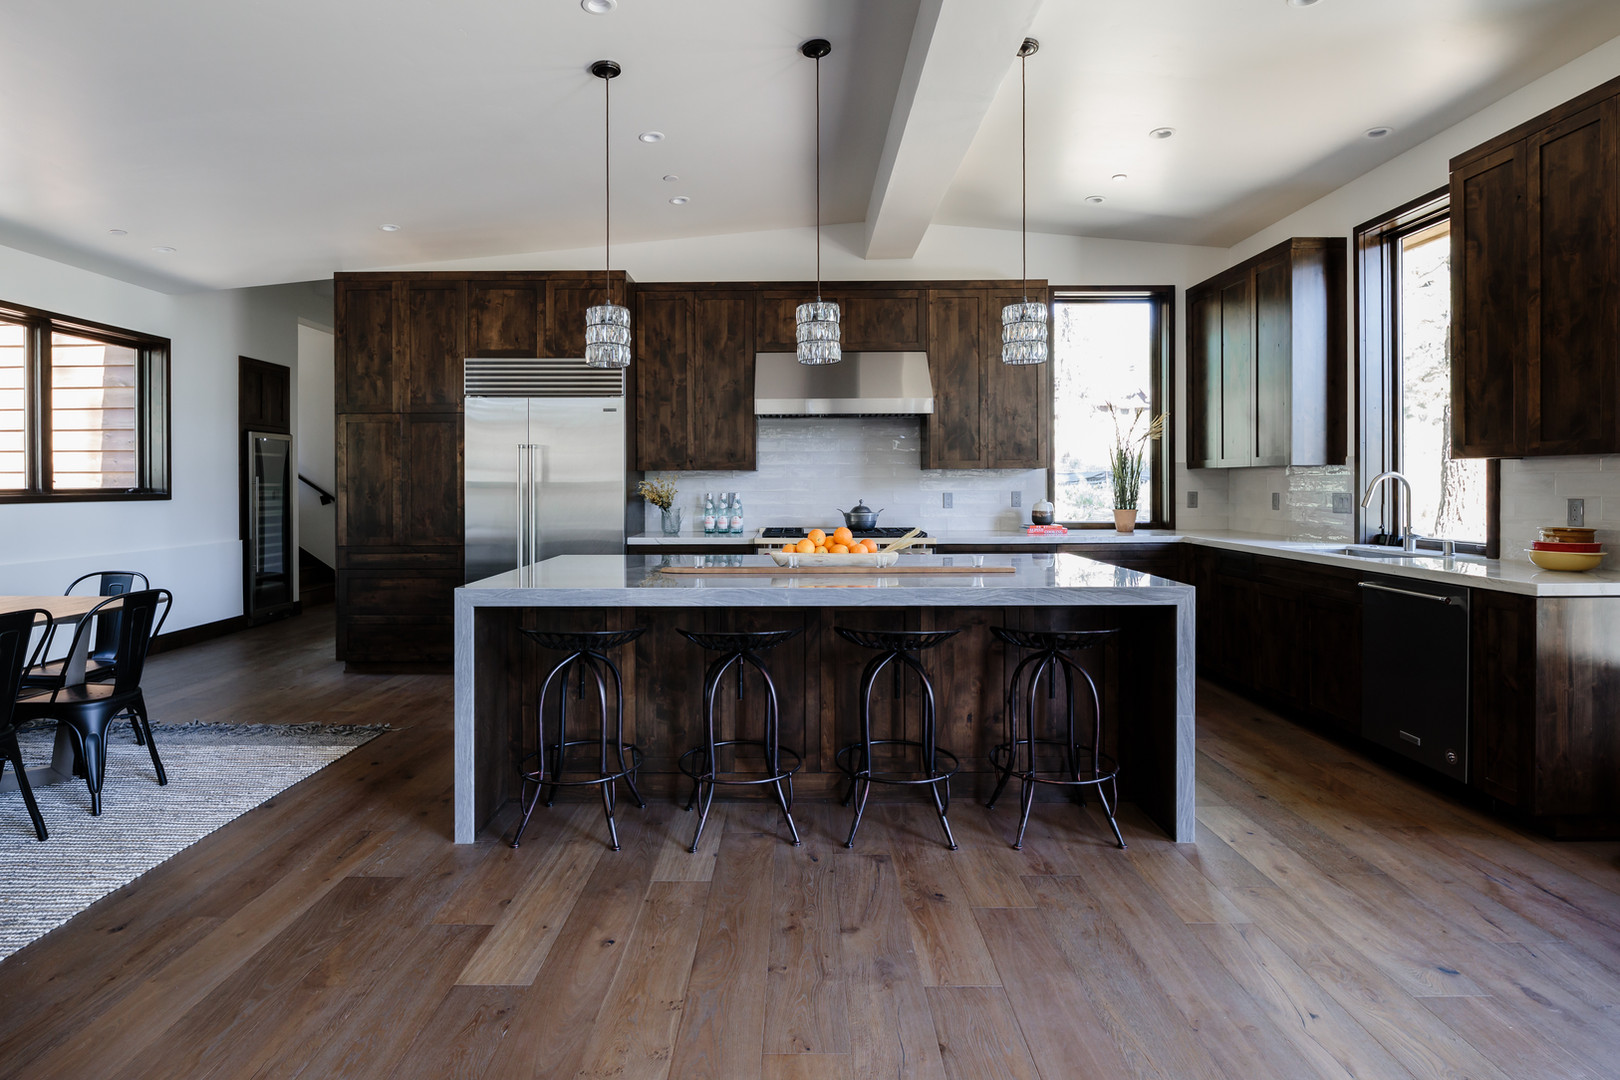 Lake Tahoe/Truckee Interior Design Services by Tinsel House Studio